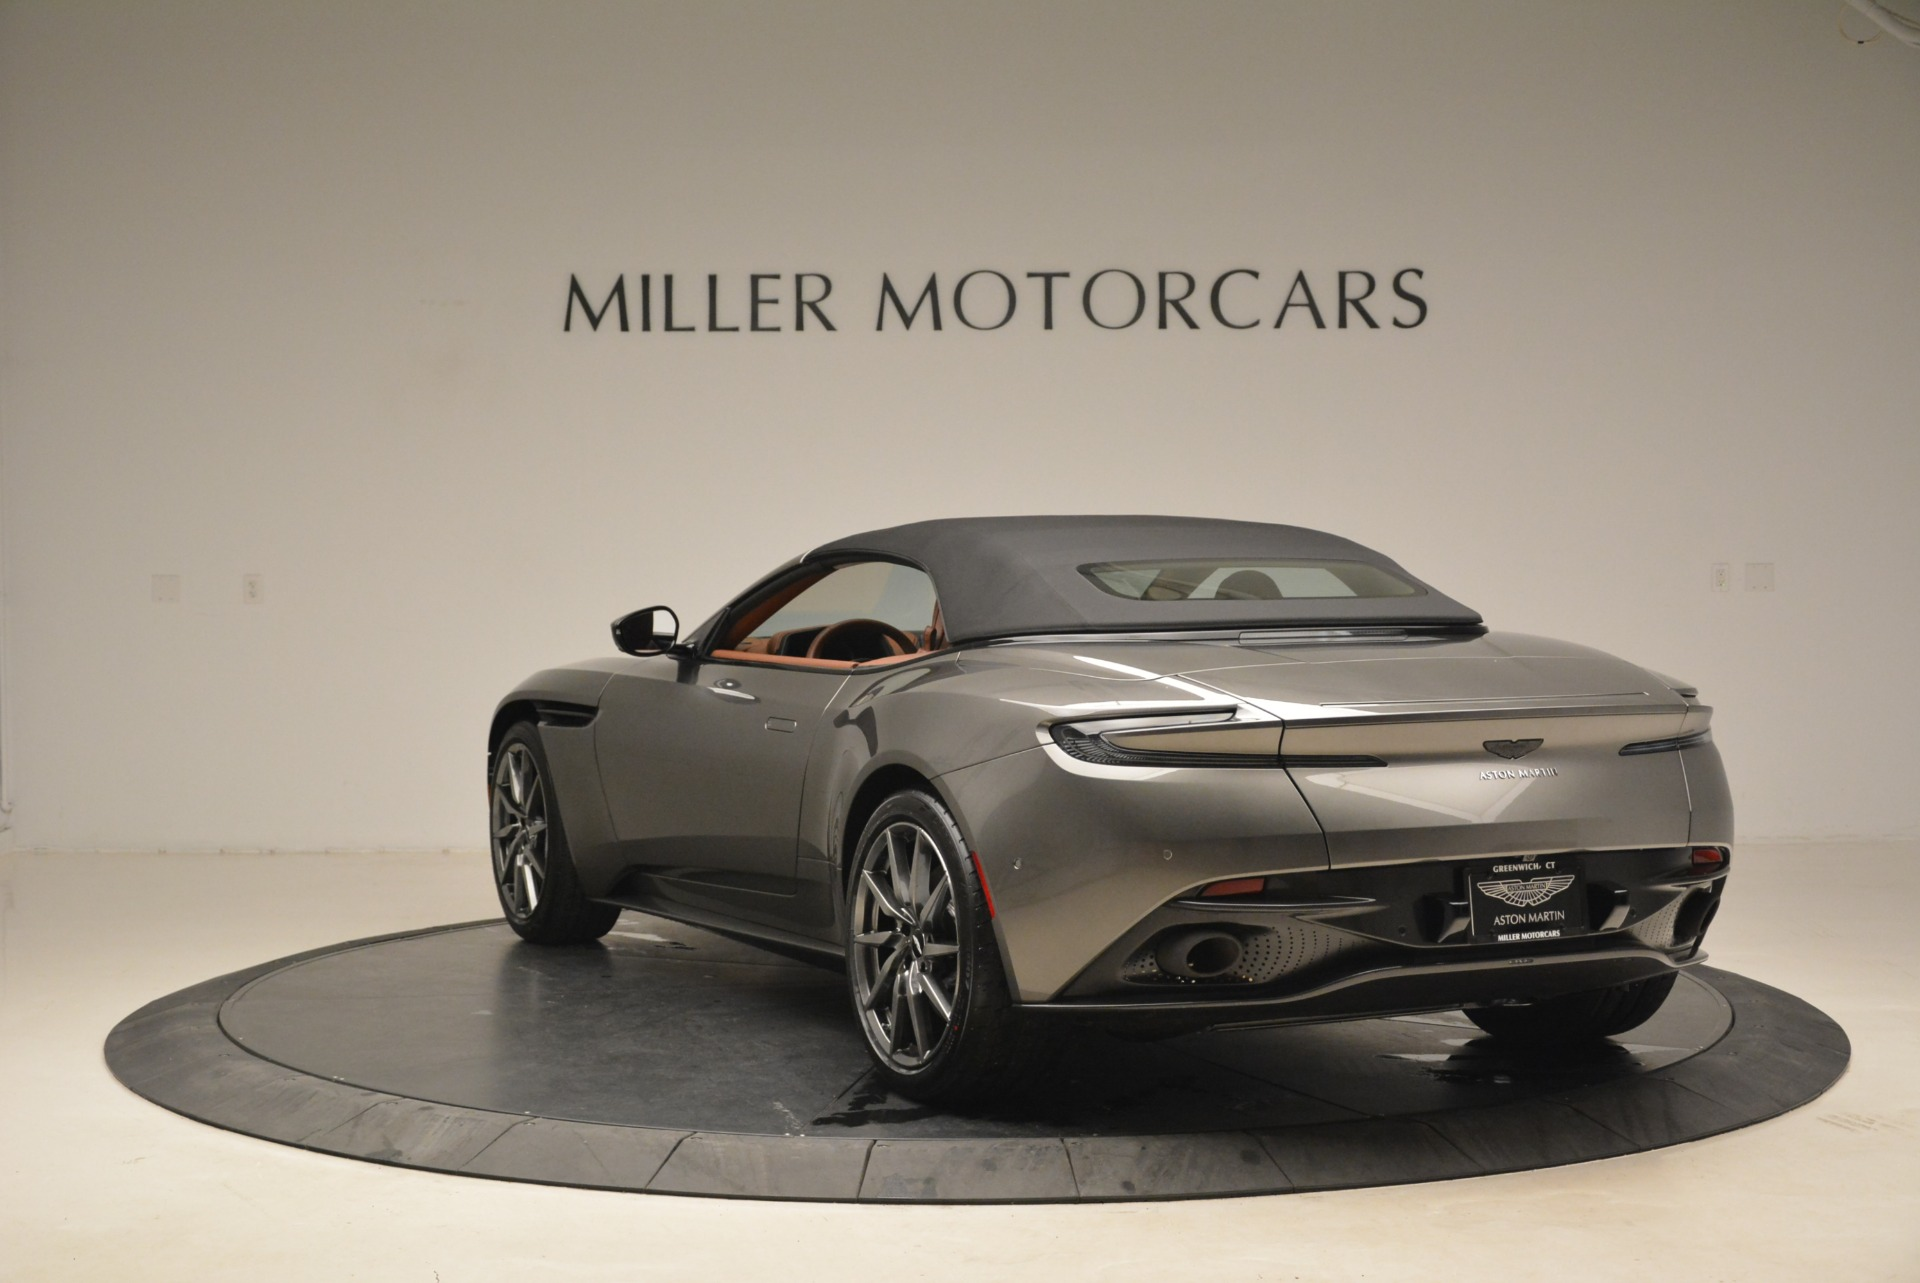 New 2019 Aston Martin DB11 Volante  For Sale In Westport, CT 2209_p17